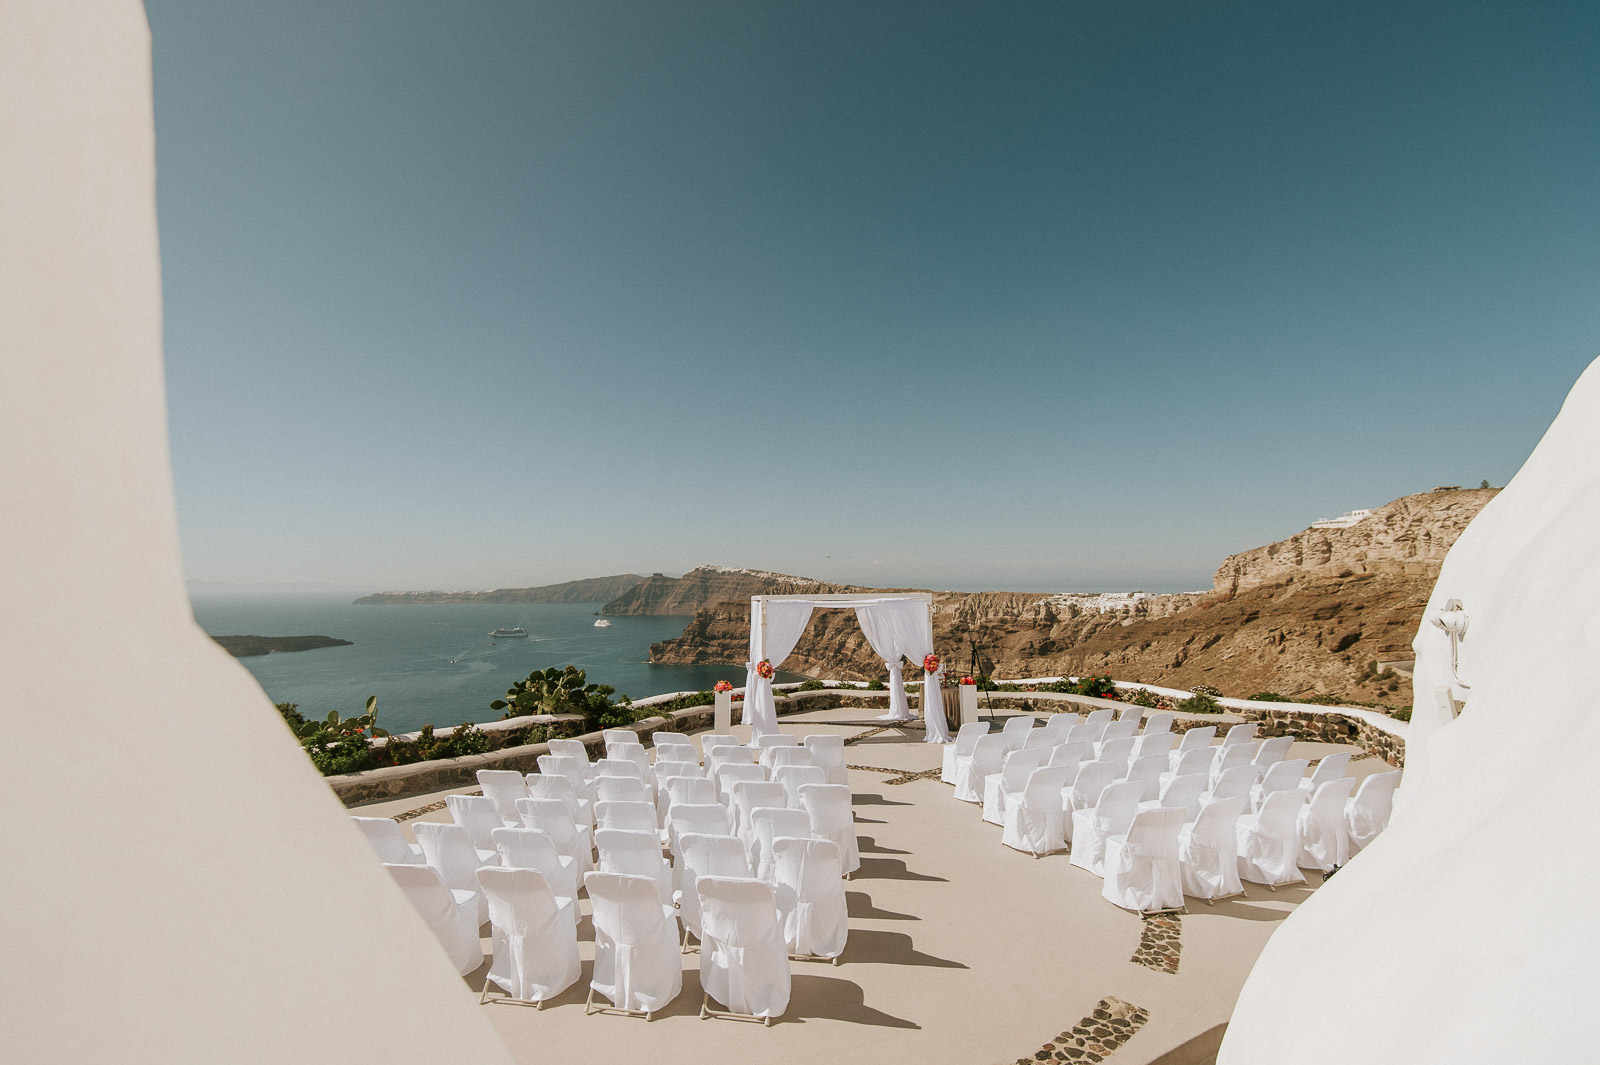 Santorini-Wedding-Photographer-Greece-Destination-Weddings-Mait-Juriado-M&J-Studios-045